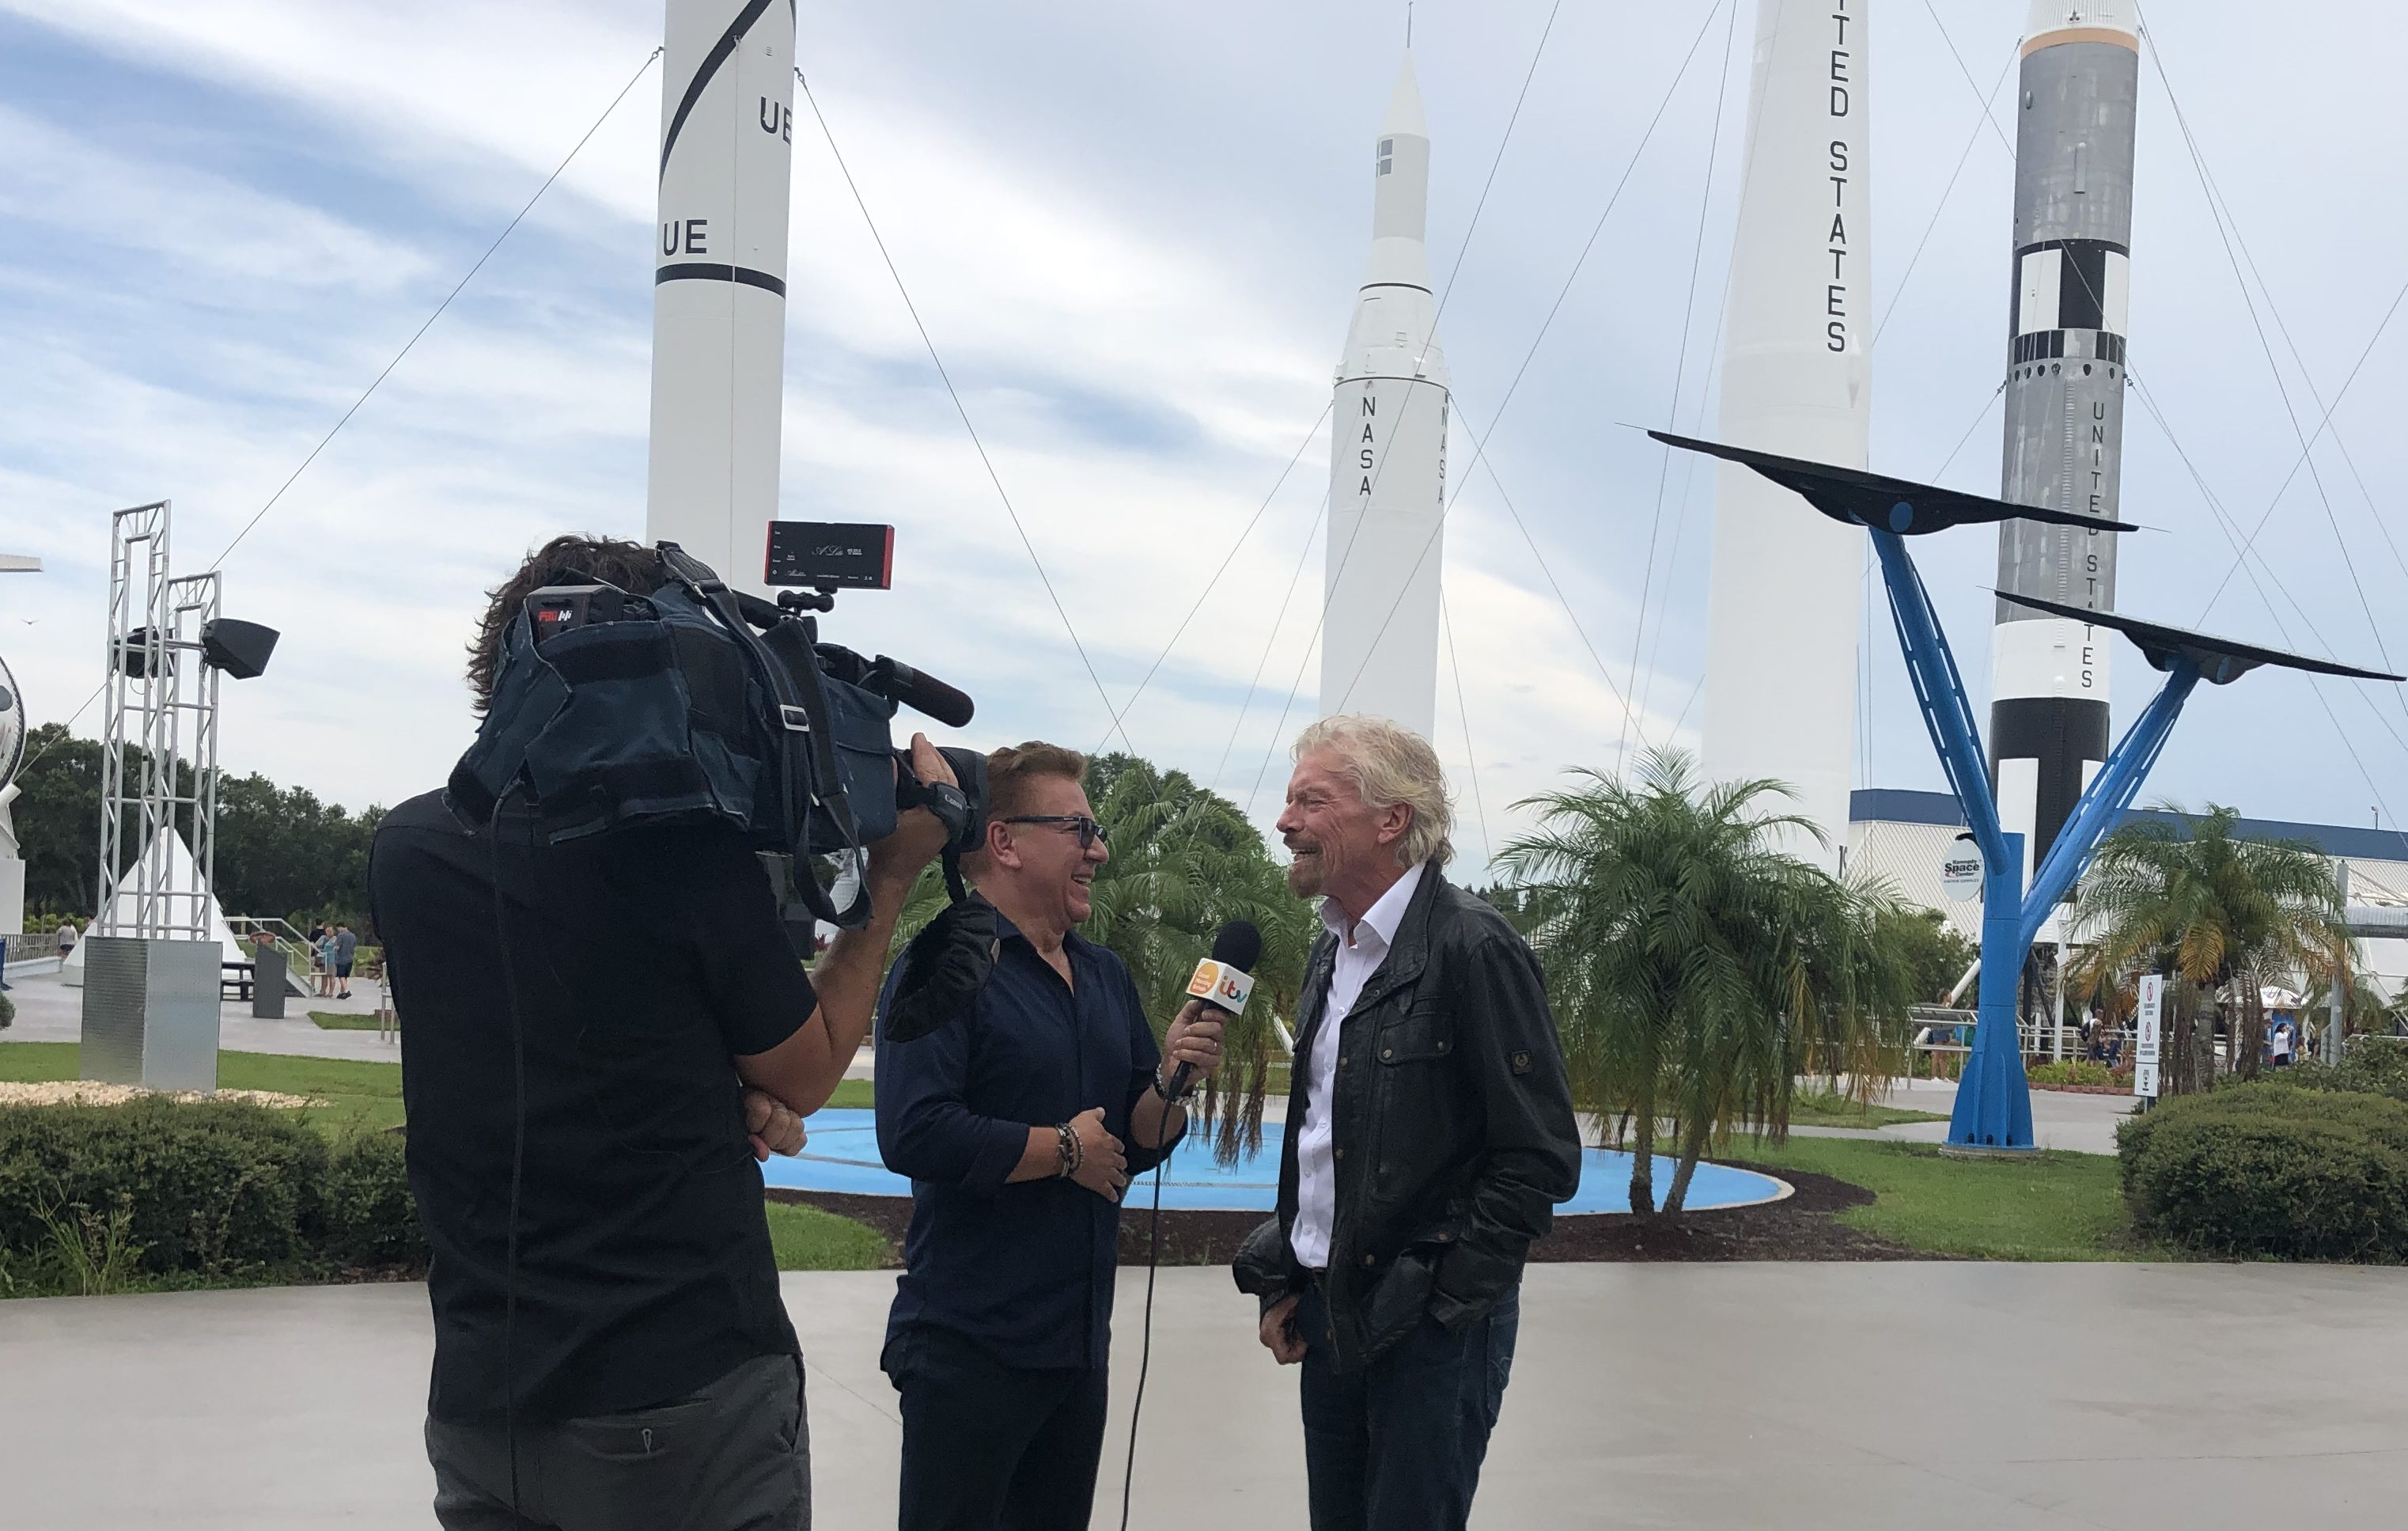 Ross speaks to Sir Richard at NASA's Kennedy Space Center